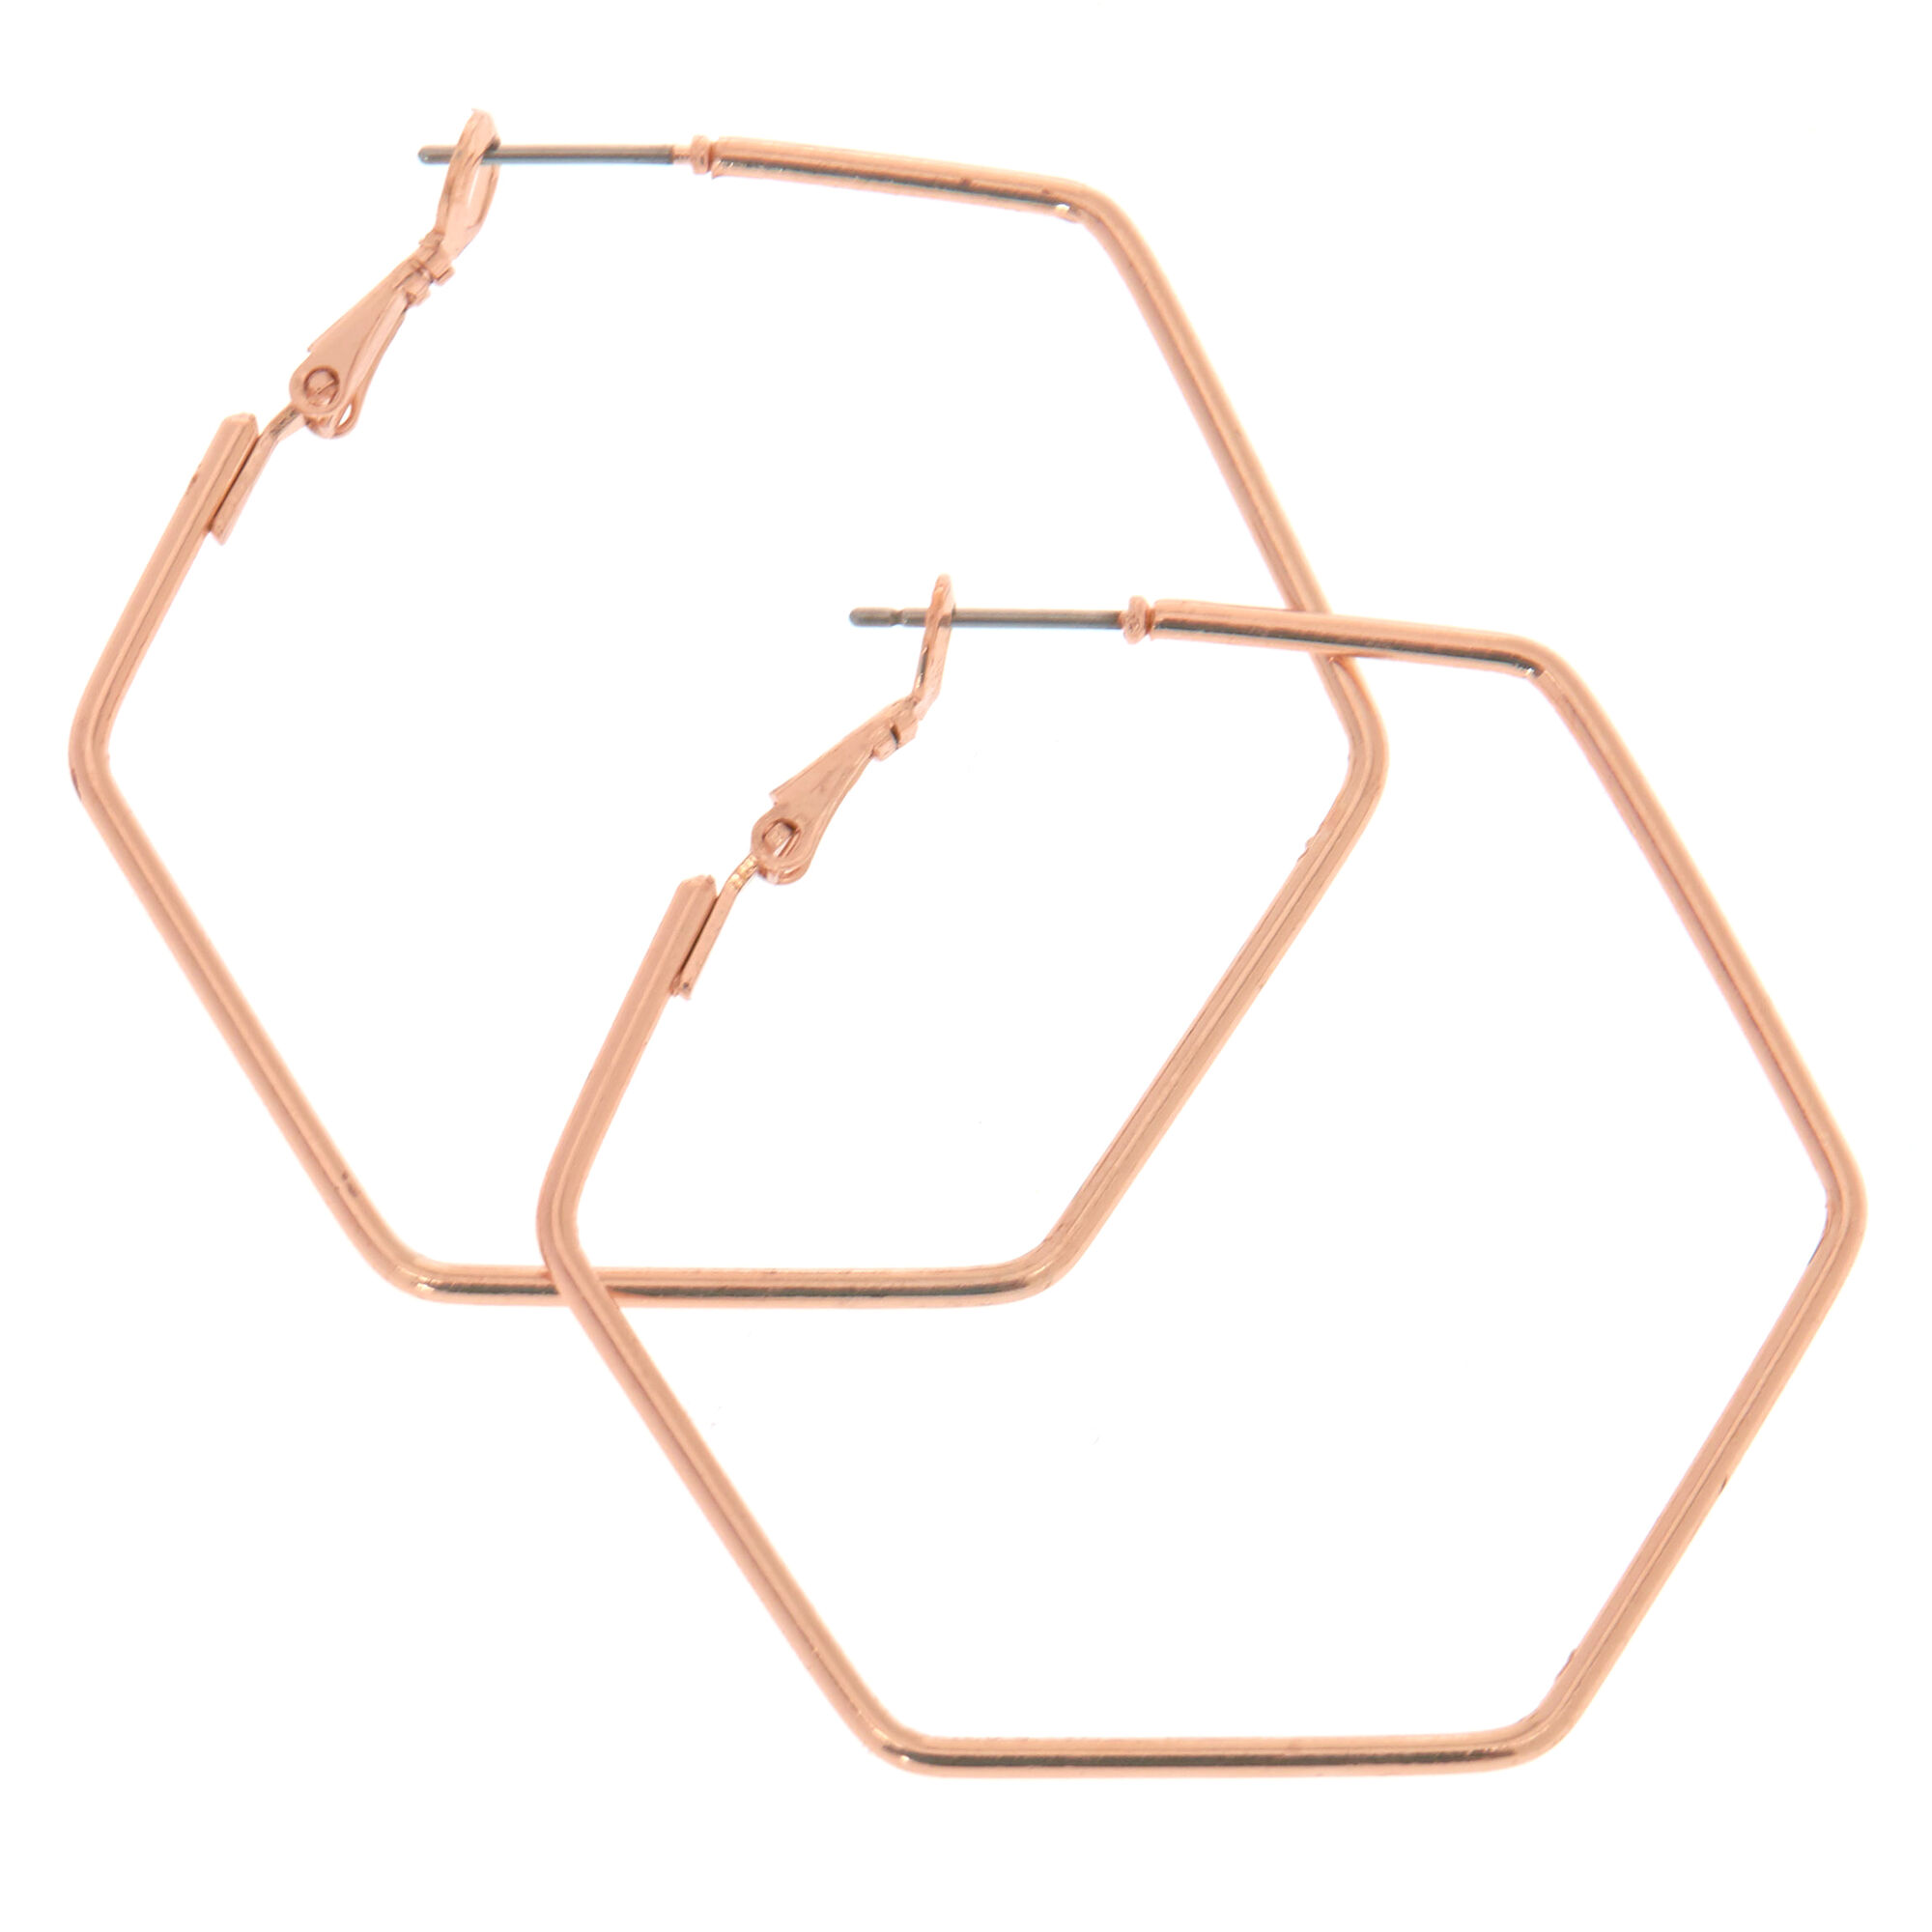 drop products rachel hexagon earrings highres jackson london